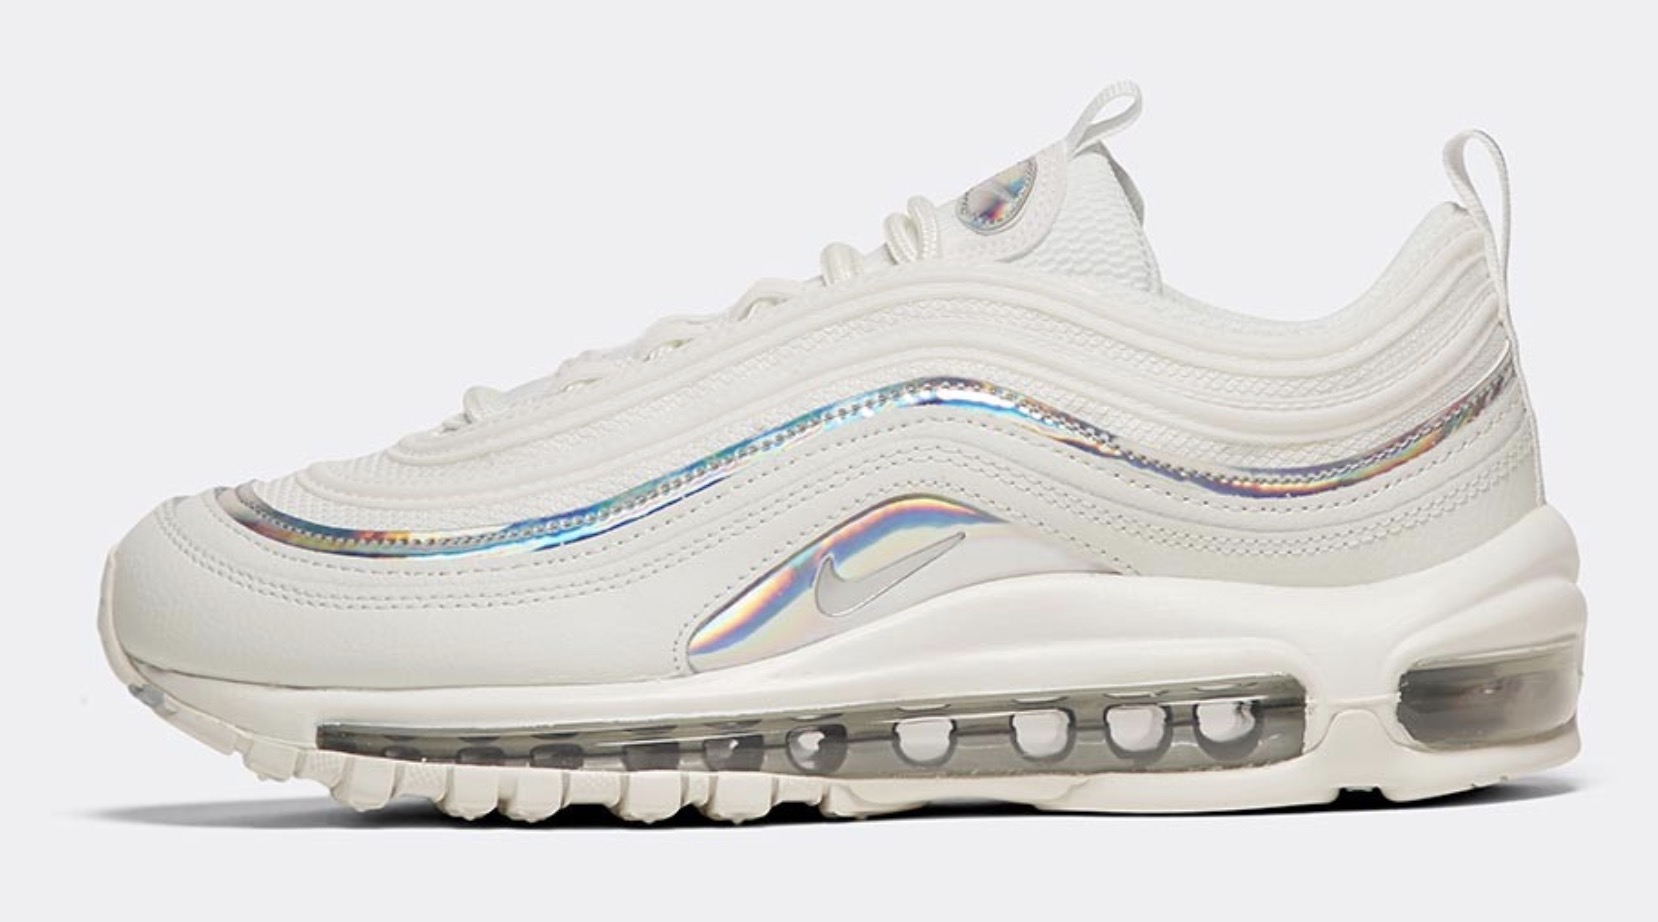 7 Air Max 97s From Foot Asylum To Add To Your Everyday